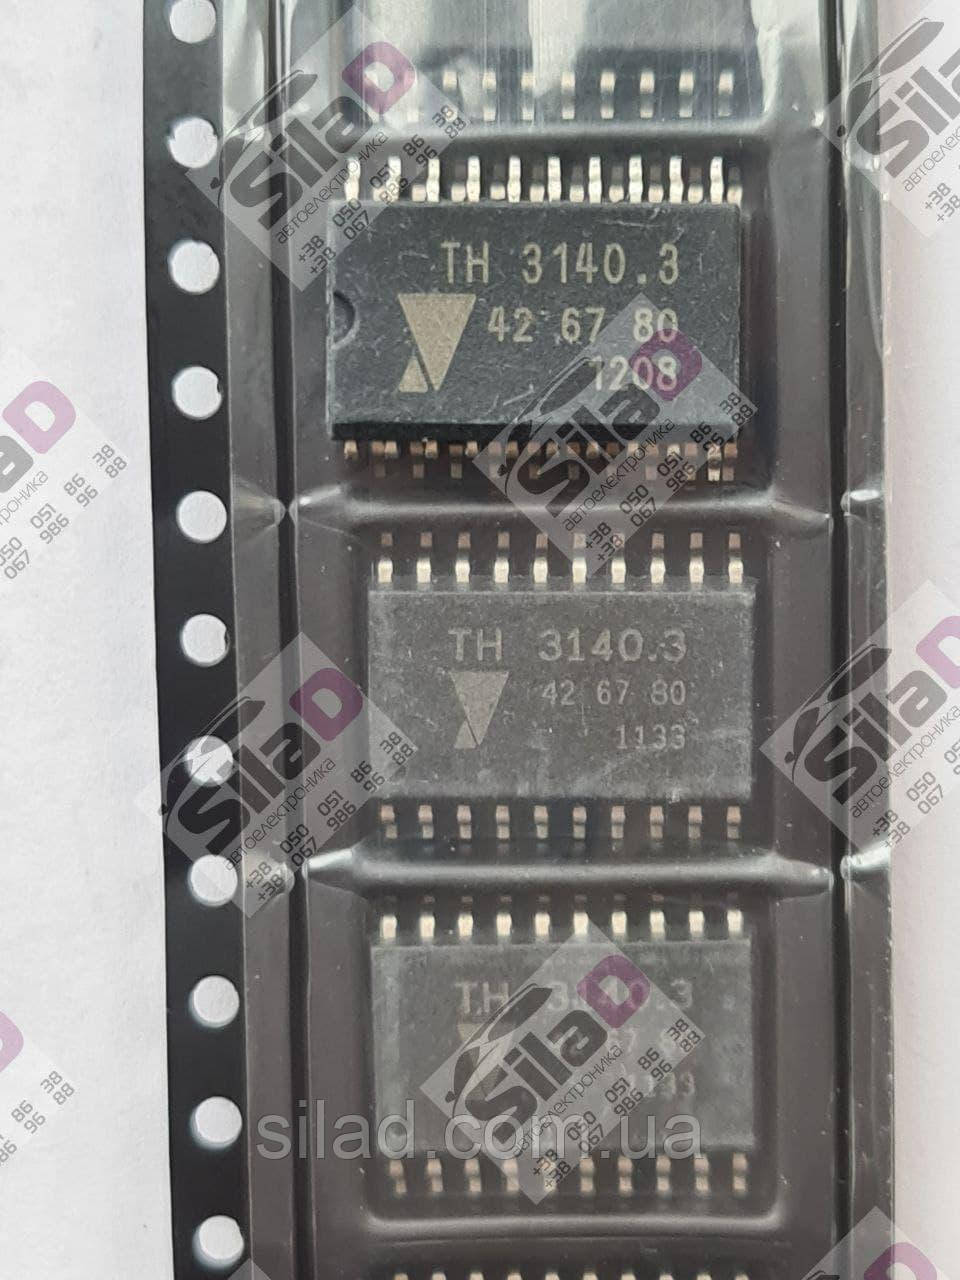 Микросхема TH3140.3 Thesys Mikroelektronik корпус SOP20